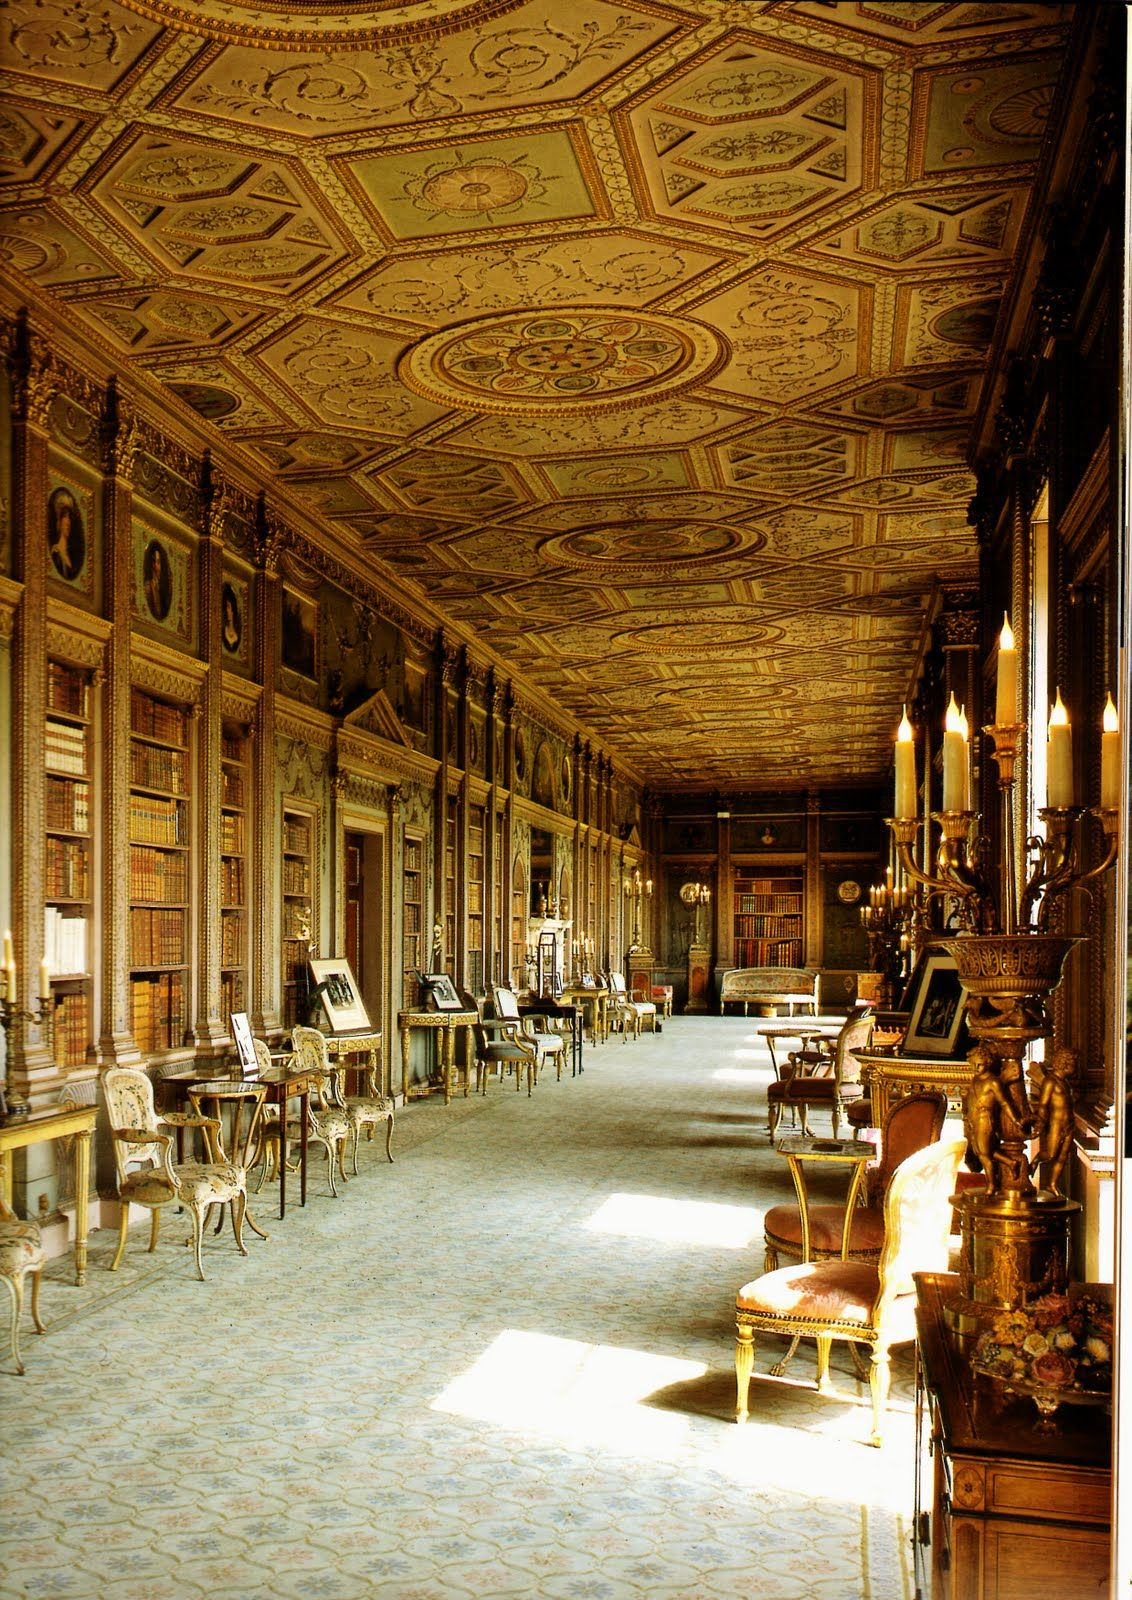 syon house library. london, england. the eclectic interior of the